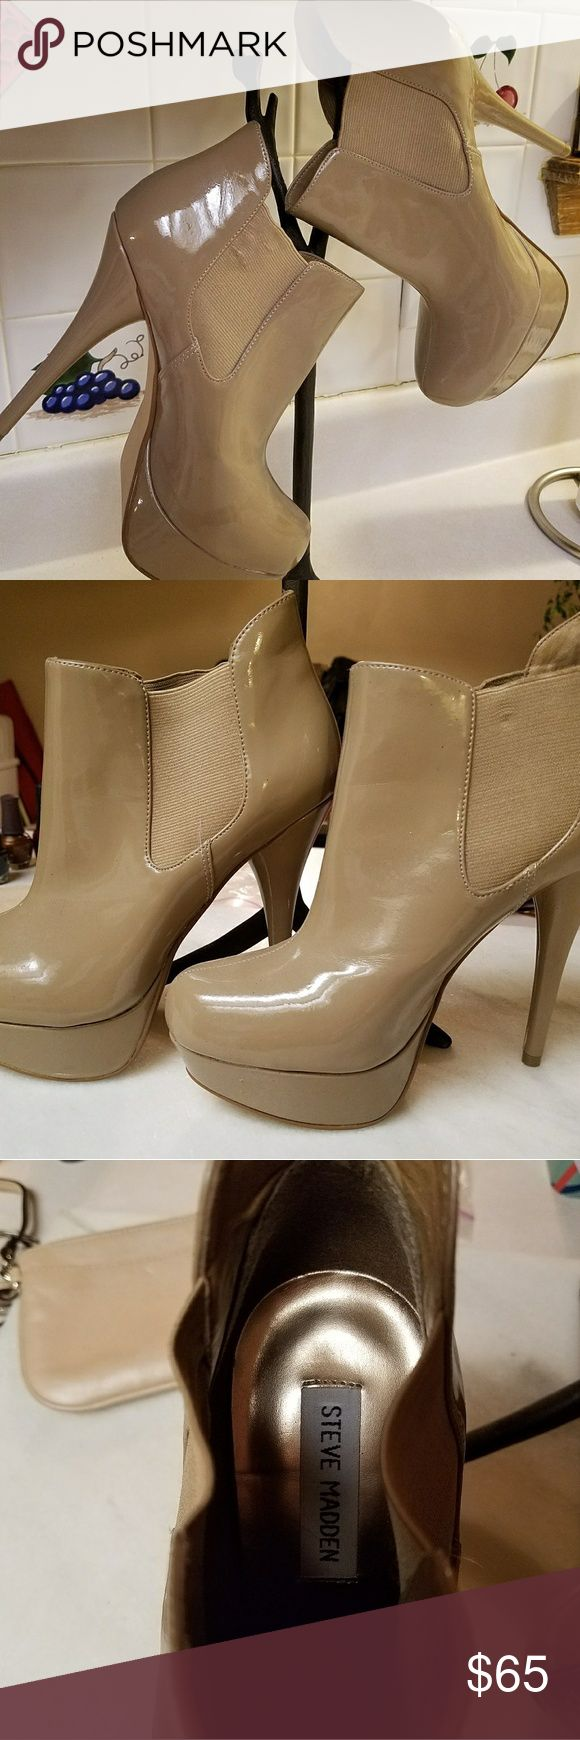 Steve Madden P-Raven High Heels Almost New P-Raven Tan Steve Madden Size 7 or 7.5. 1.5 inch Platform with 5 inch Heel. Steve Madden Shoes Platforms